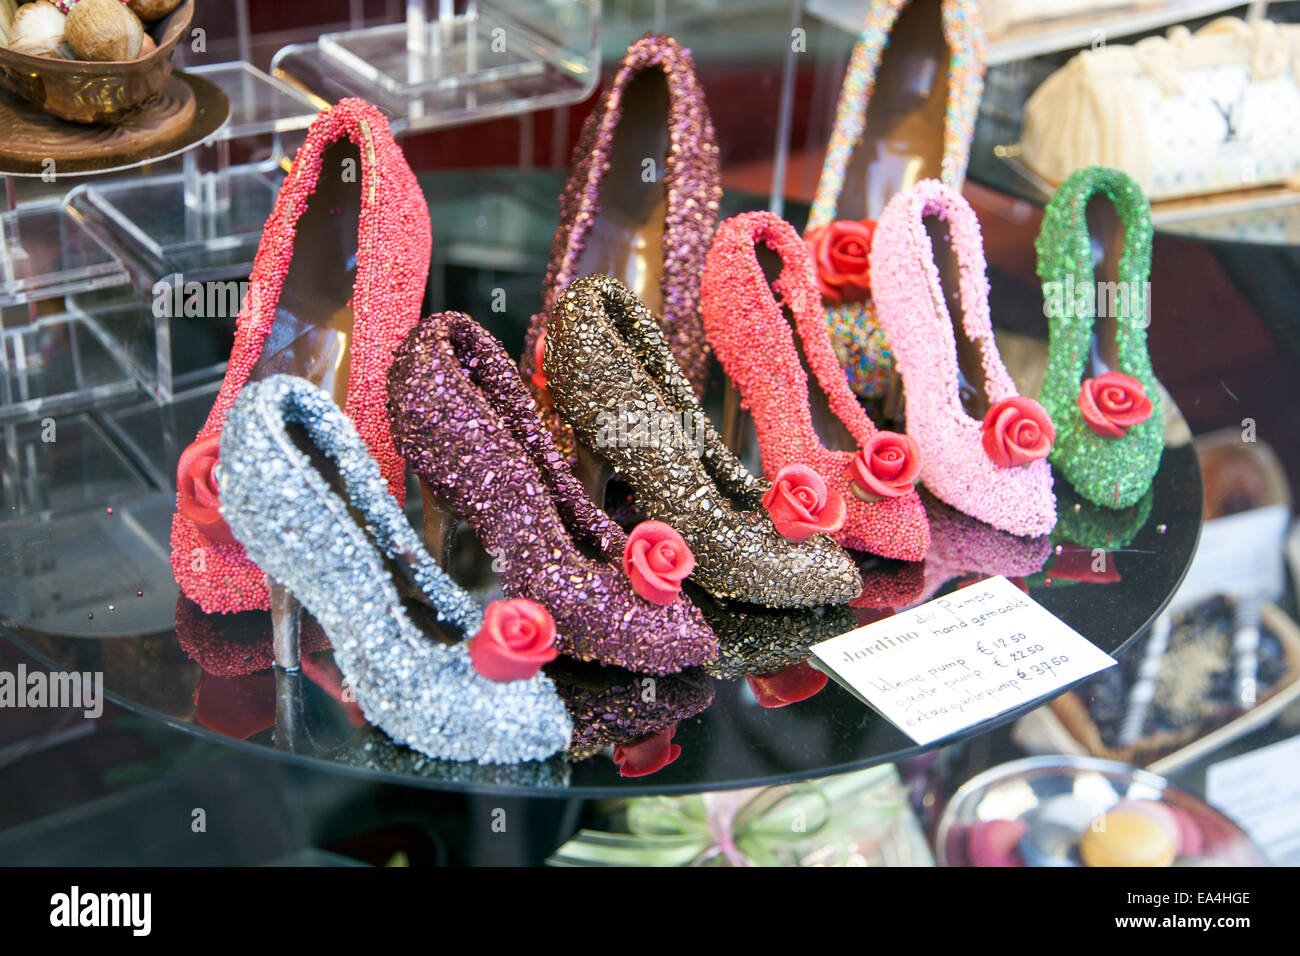 High heel shoes made of chocolate at a specialist shop in Amsterdam, Holland - Stock Image